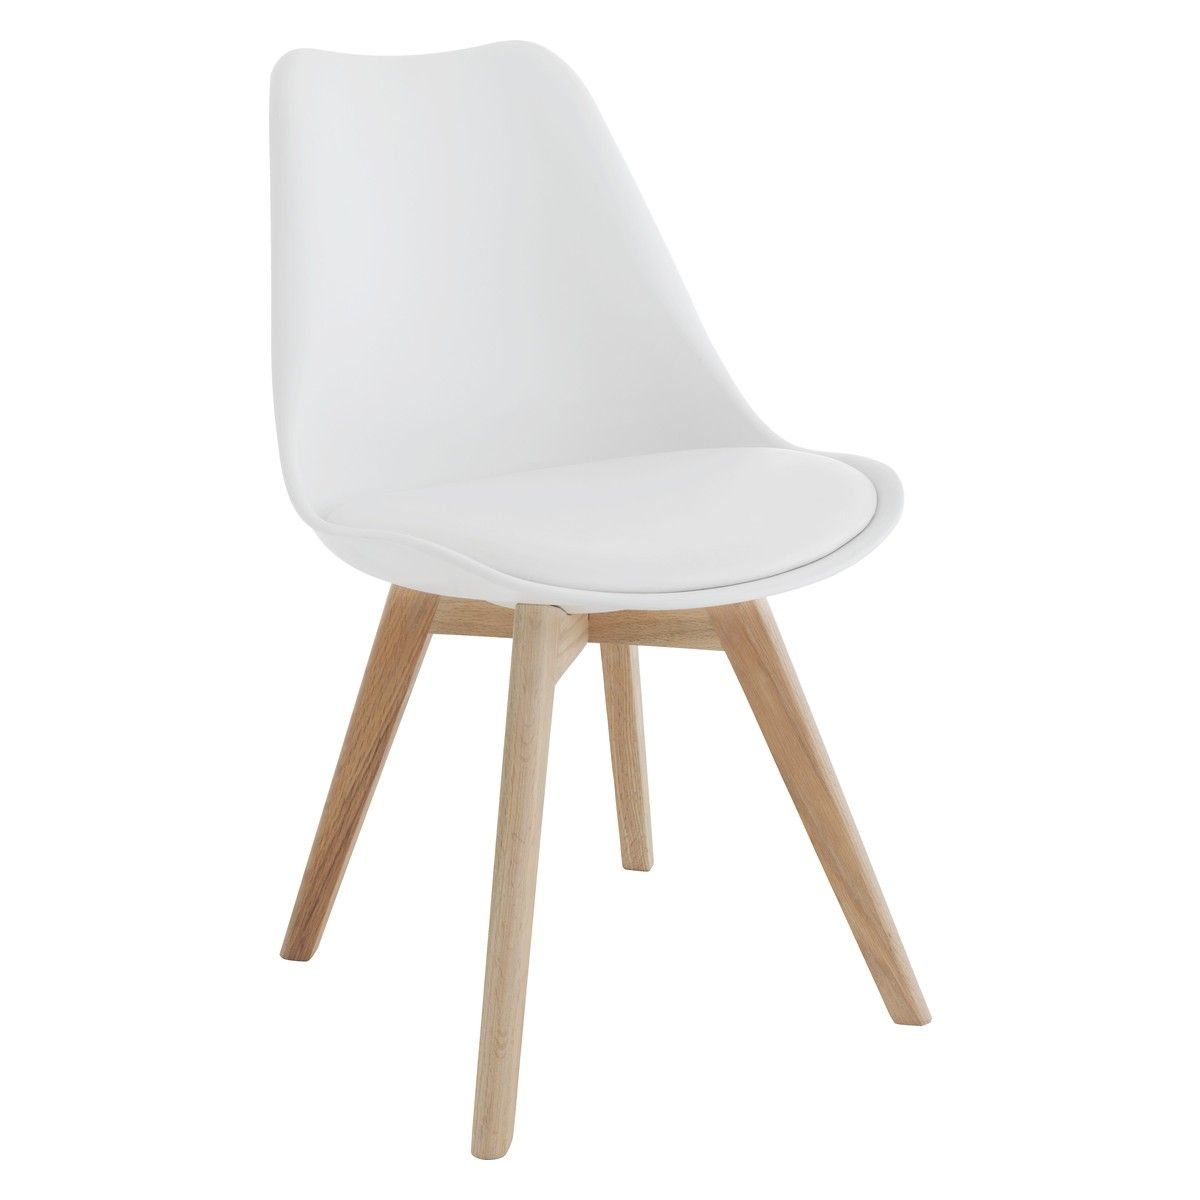 JERRY White dining chair White dining chairs Dining chairs and Room